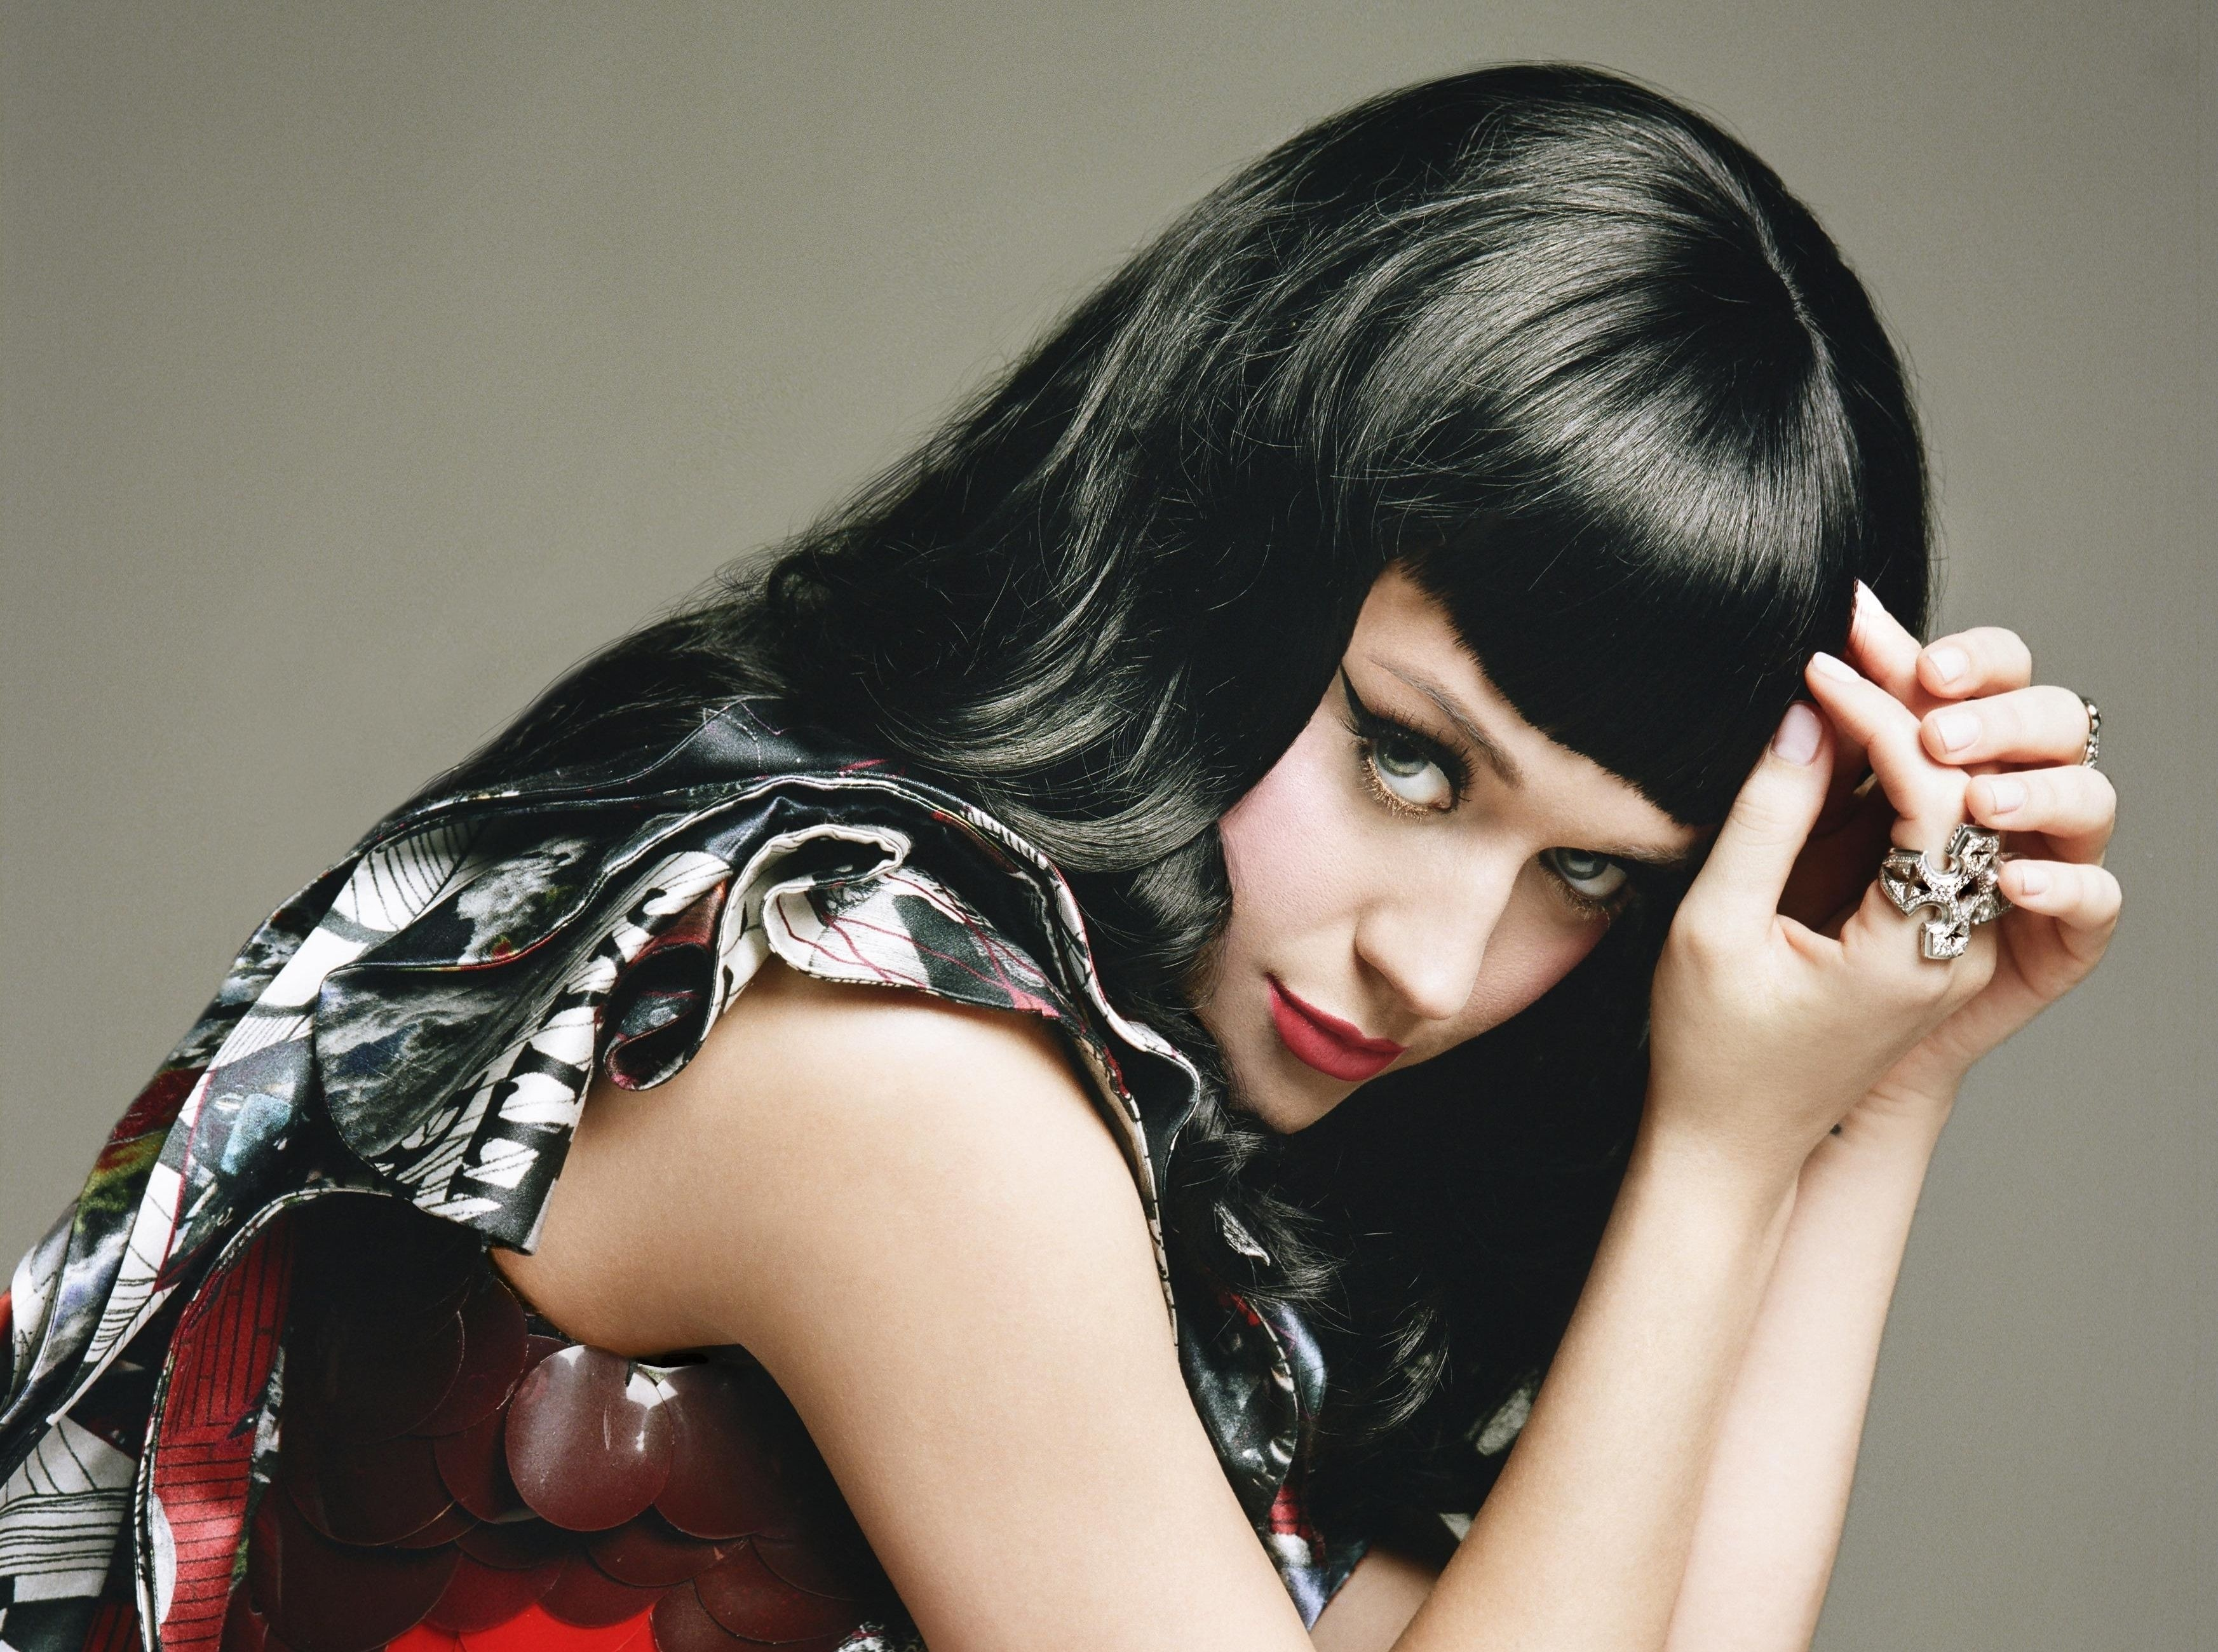 Wallpaper Katy Perry Artists Music Brunette Red Lips Jewel